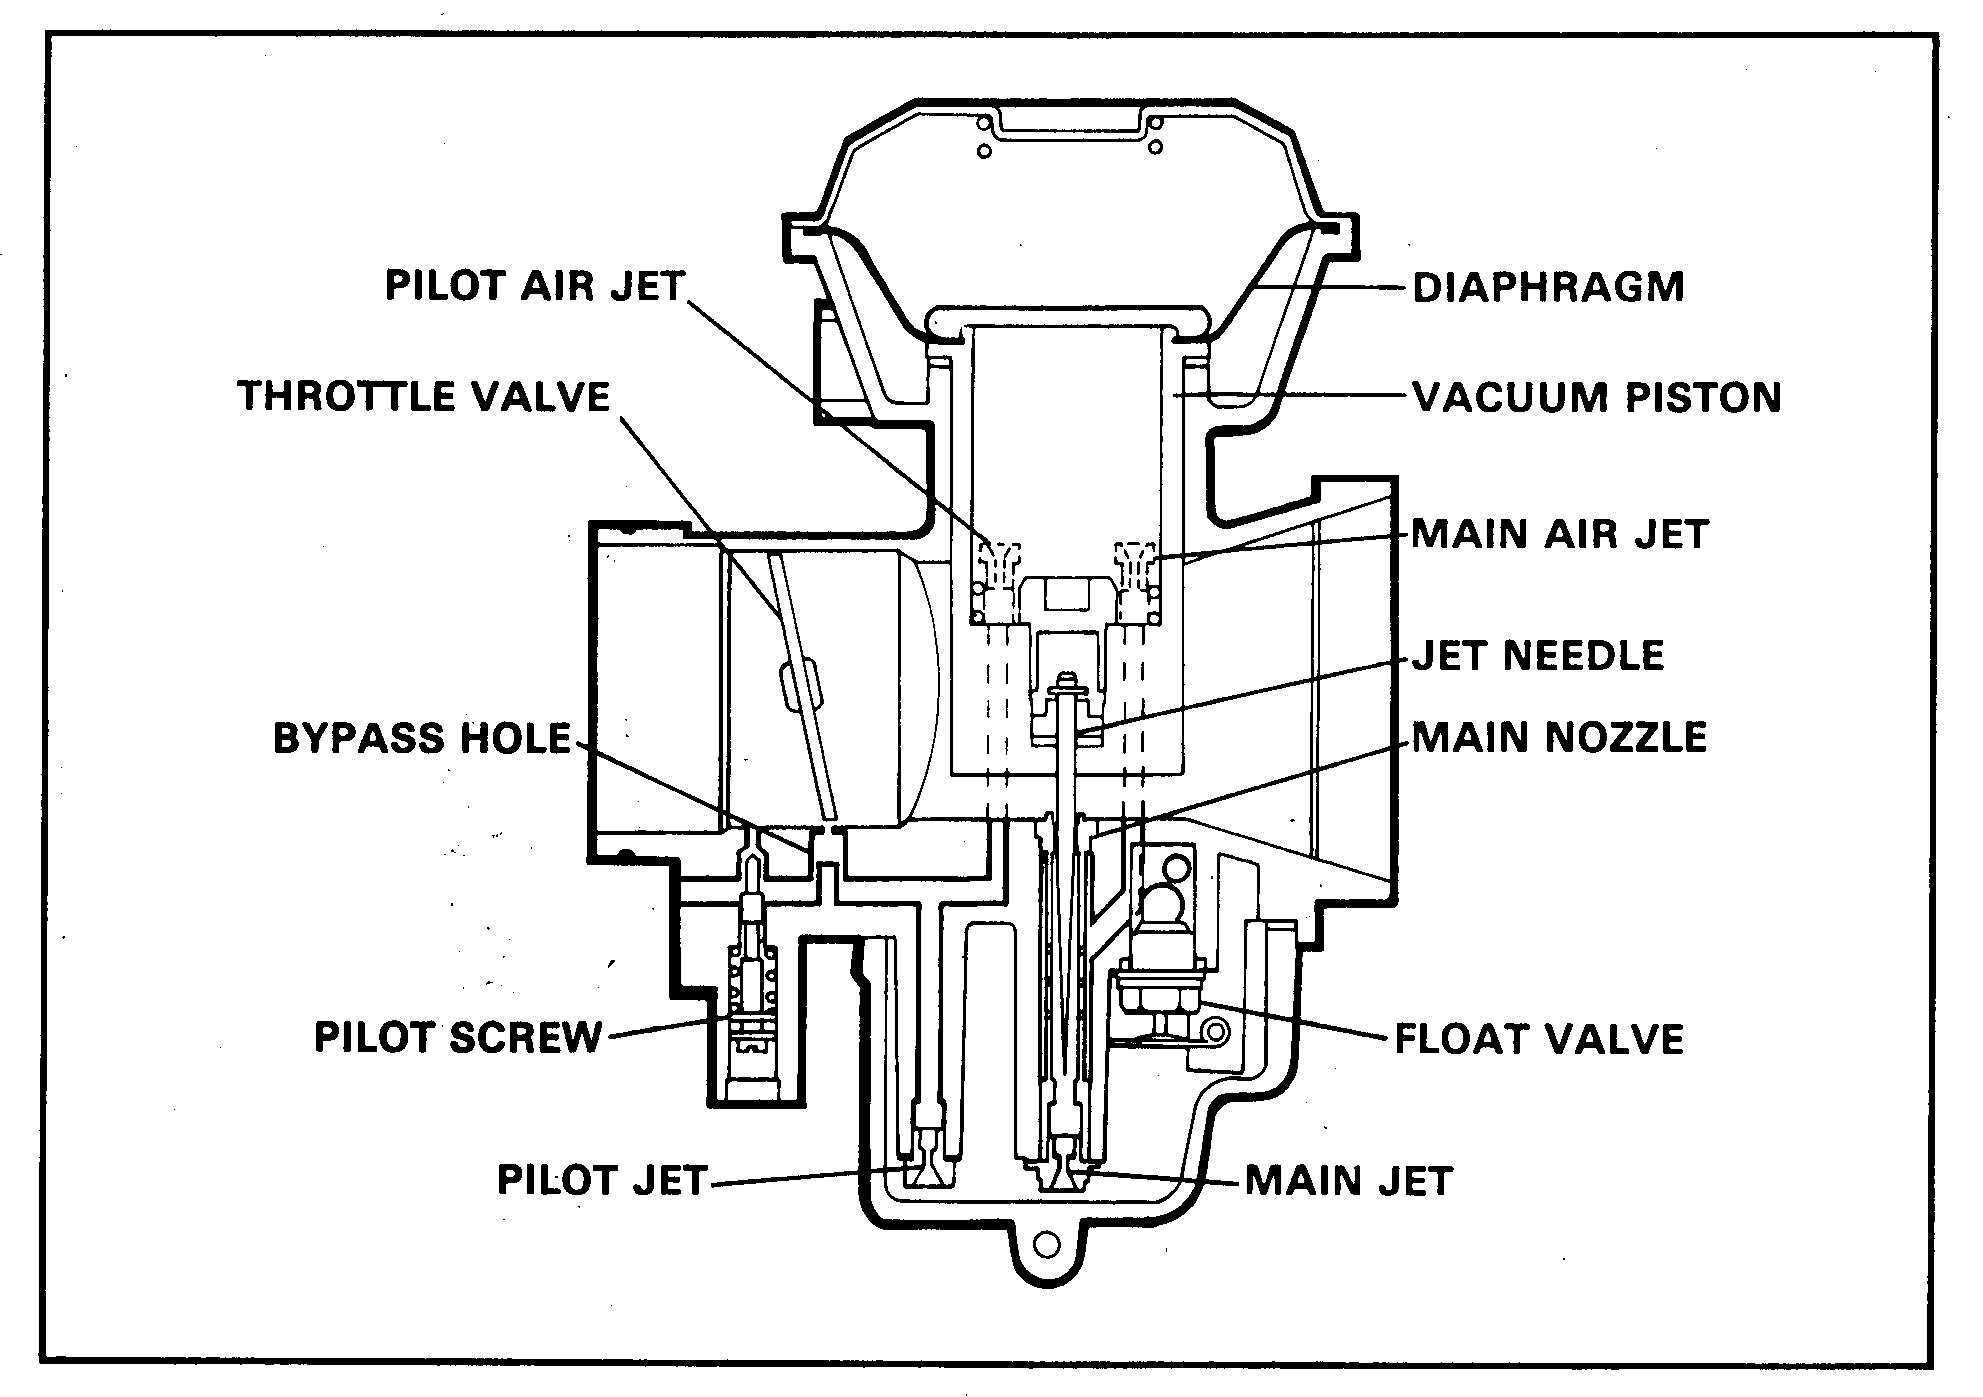 virago hitachi carburetors yamaha virago viragohelp com : carb diagram - findchart.co